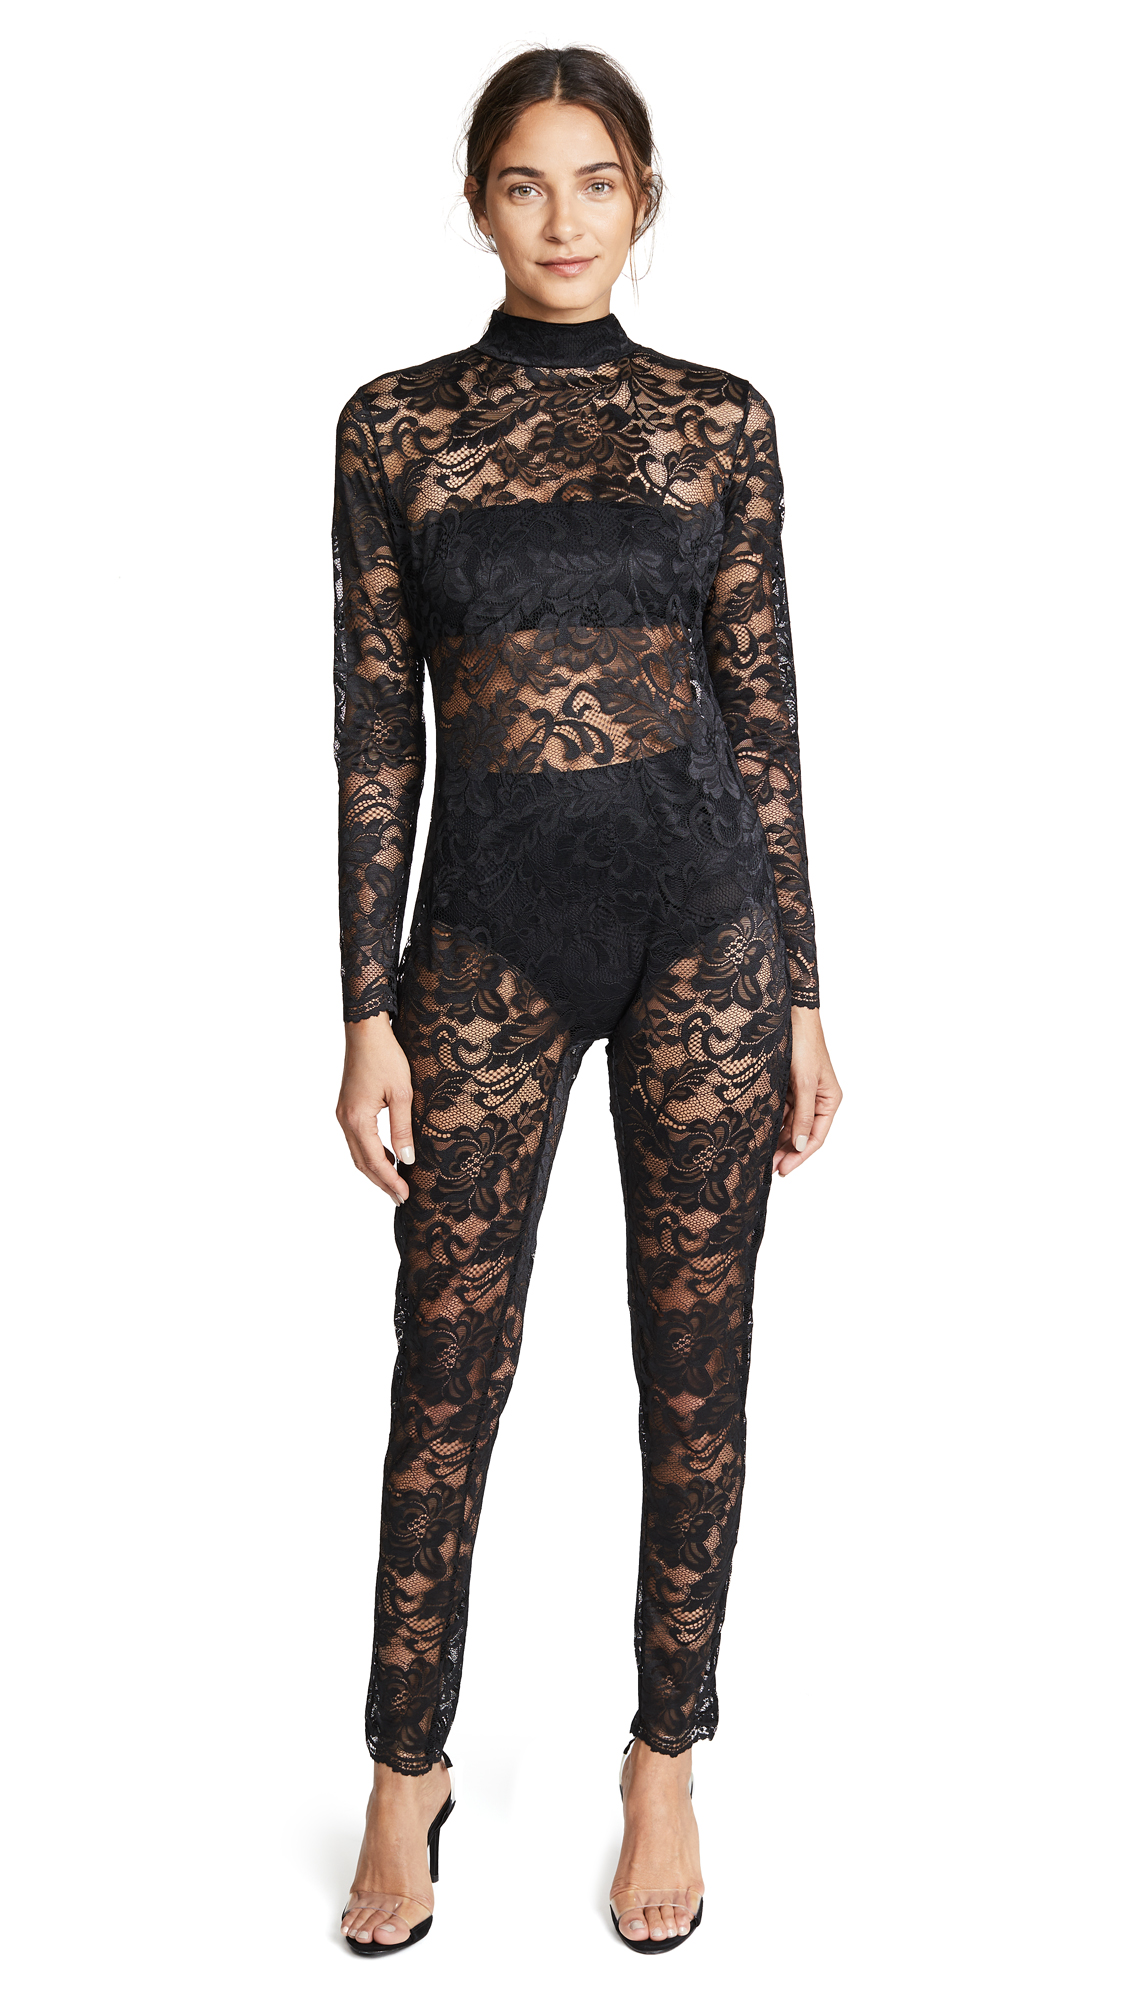 KISSKILL Lace Catsuit In Black